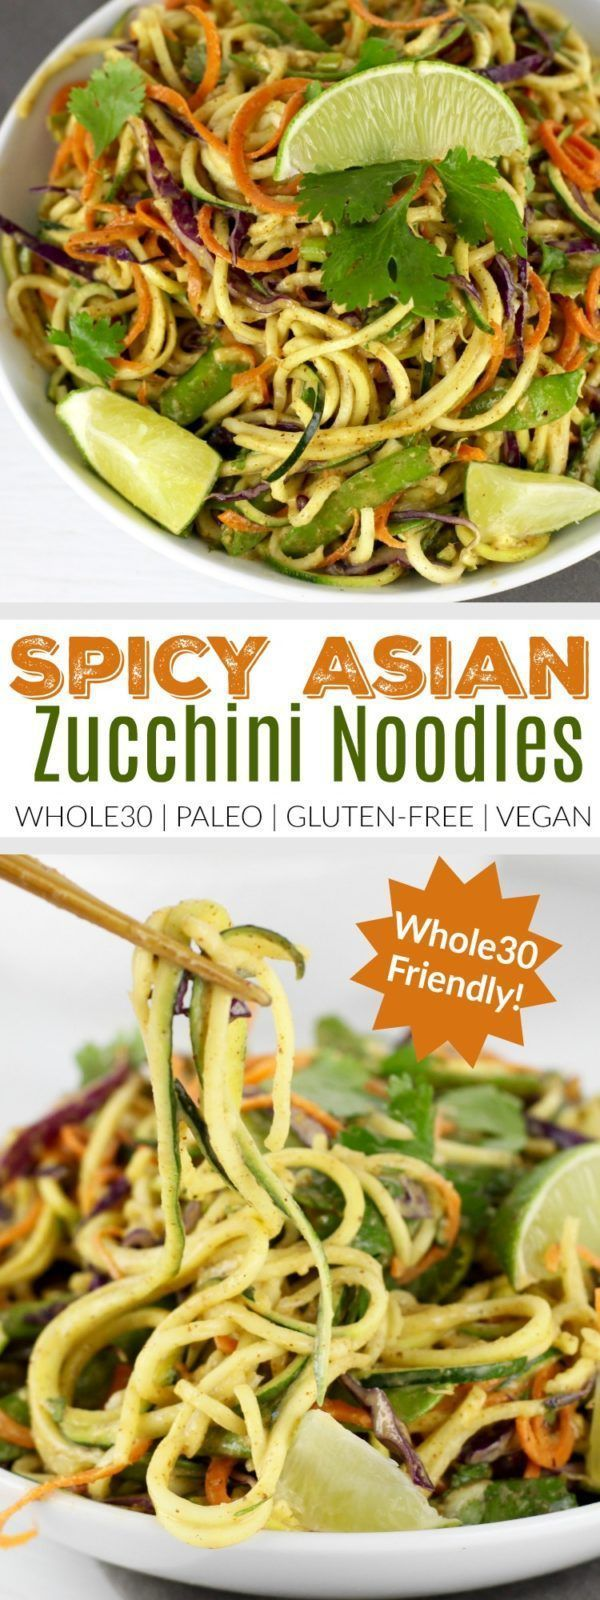 Crush those cravings for takeout with these Whole3o-friendly, no-cook Spicy Asian Zucchini Noodles. Paleo | Whole30 | Grain-free | Dairy-free